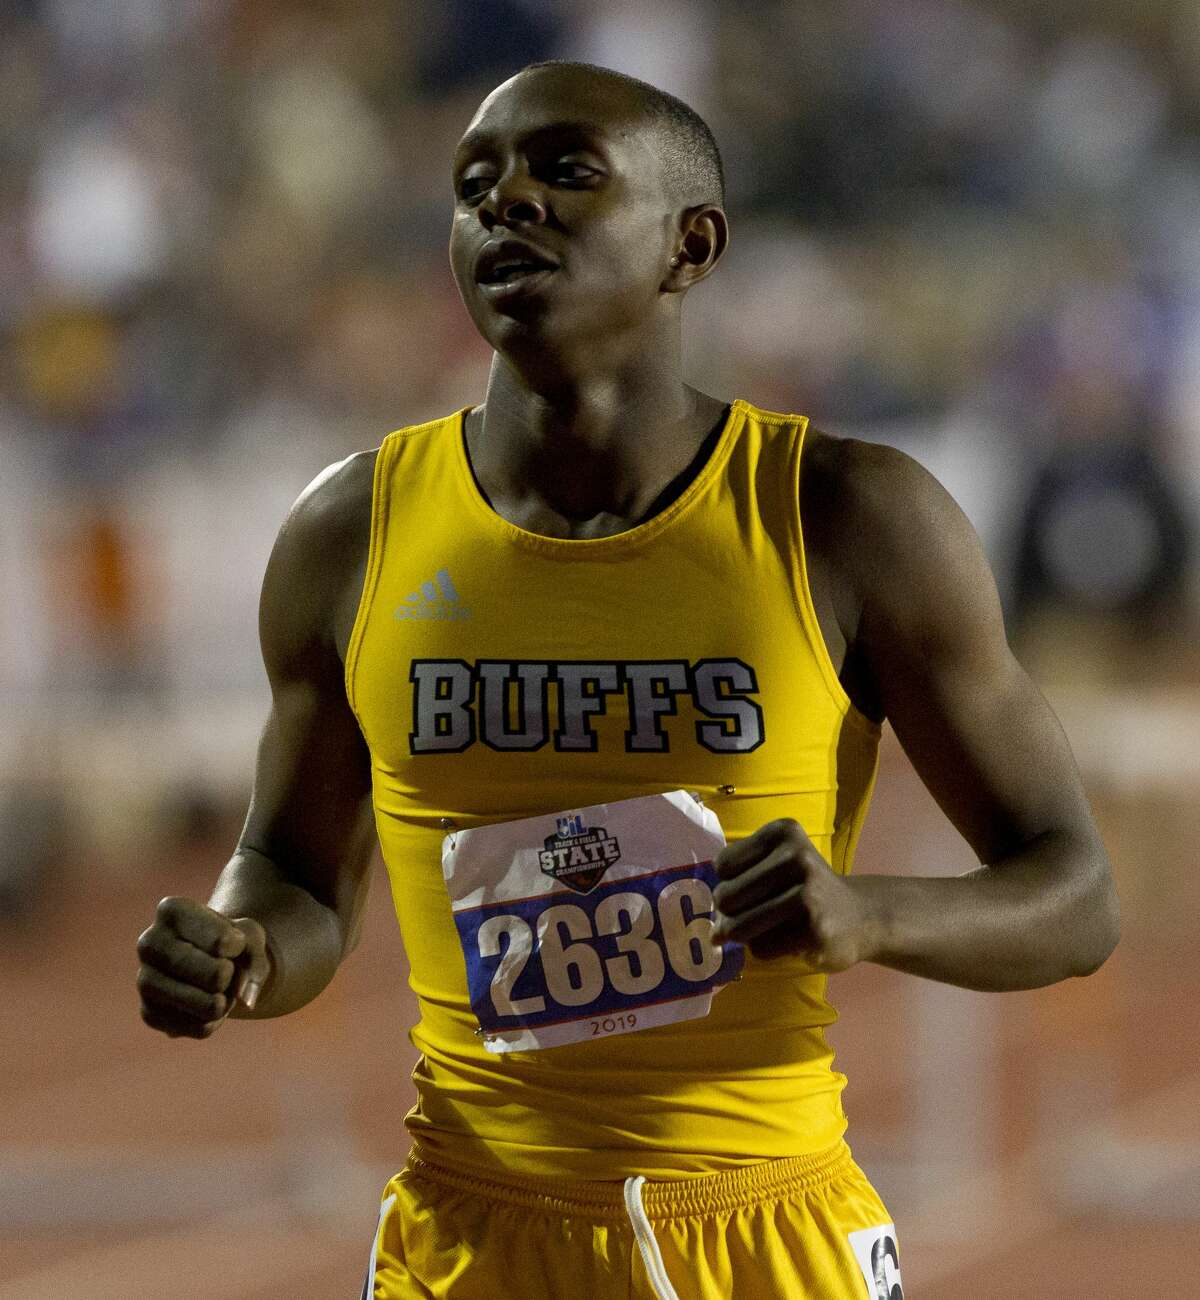 Matthias Petterway Fort Bend Marshall reacts after competing in the 5A boys 300-meter hurdles during the UIL State Track & Field Championships at Mike A. Myers Stadium, Friday, May, 10, 2019, in Austin.